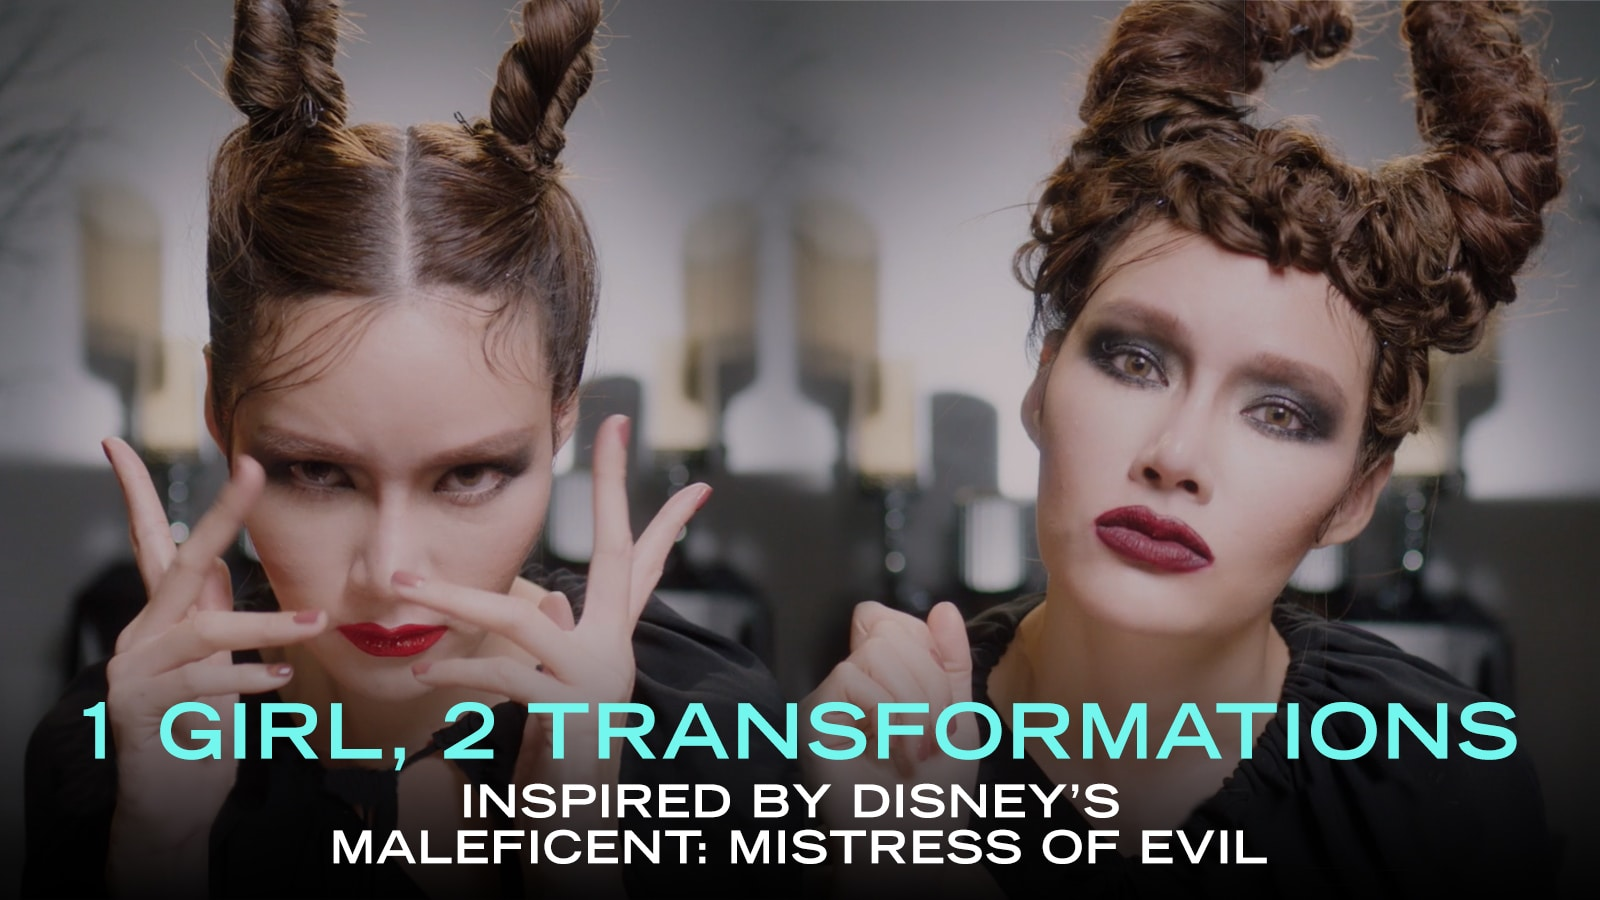 1 Girl, 2 Transformations Inspired By Disney's Maleficent: Mistress Of Evil